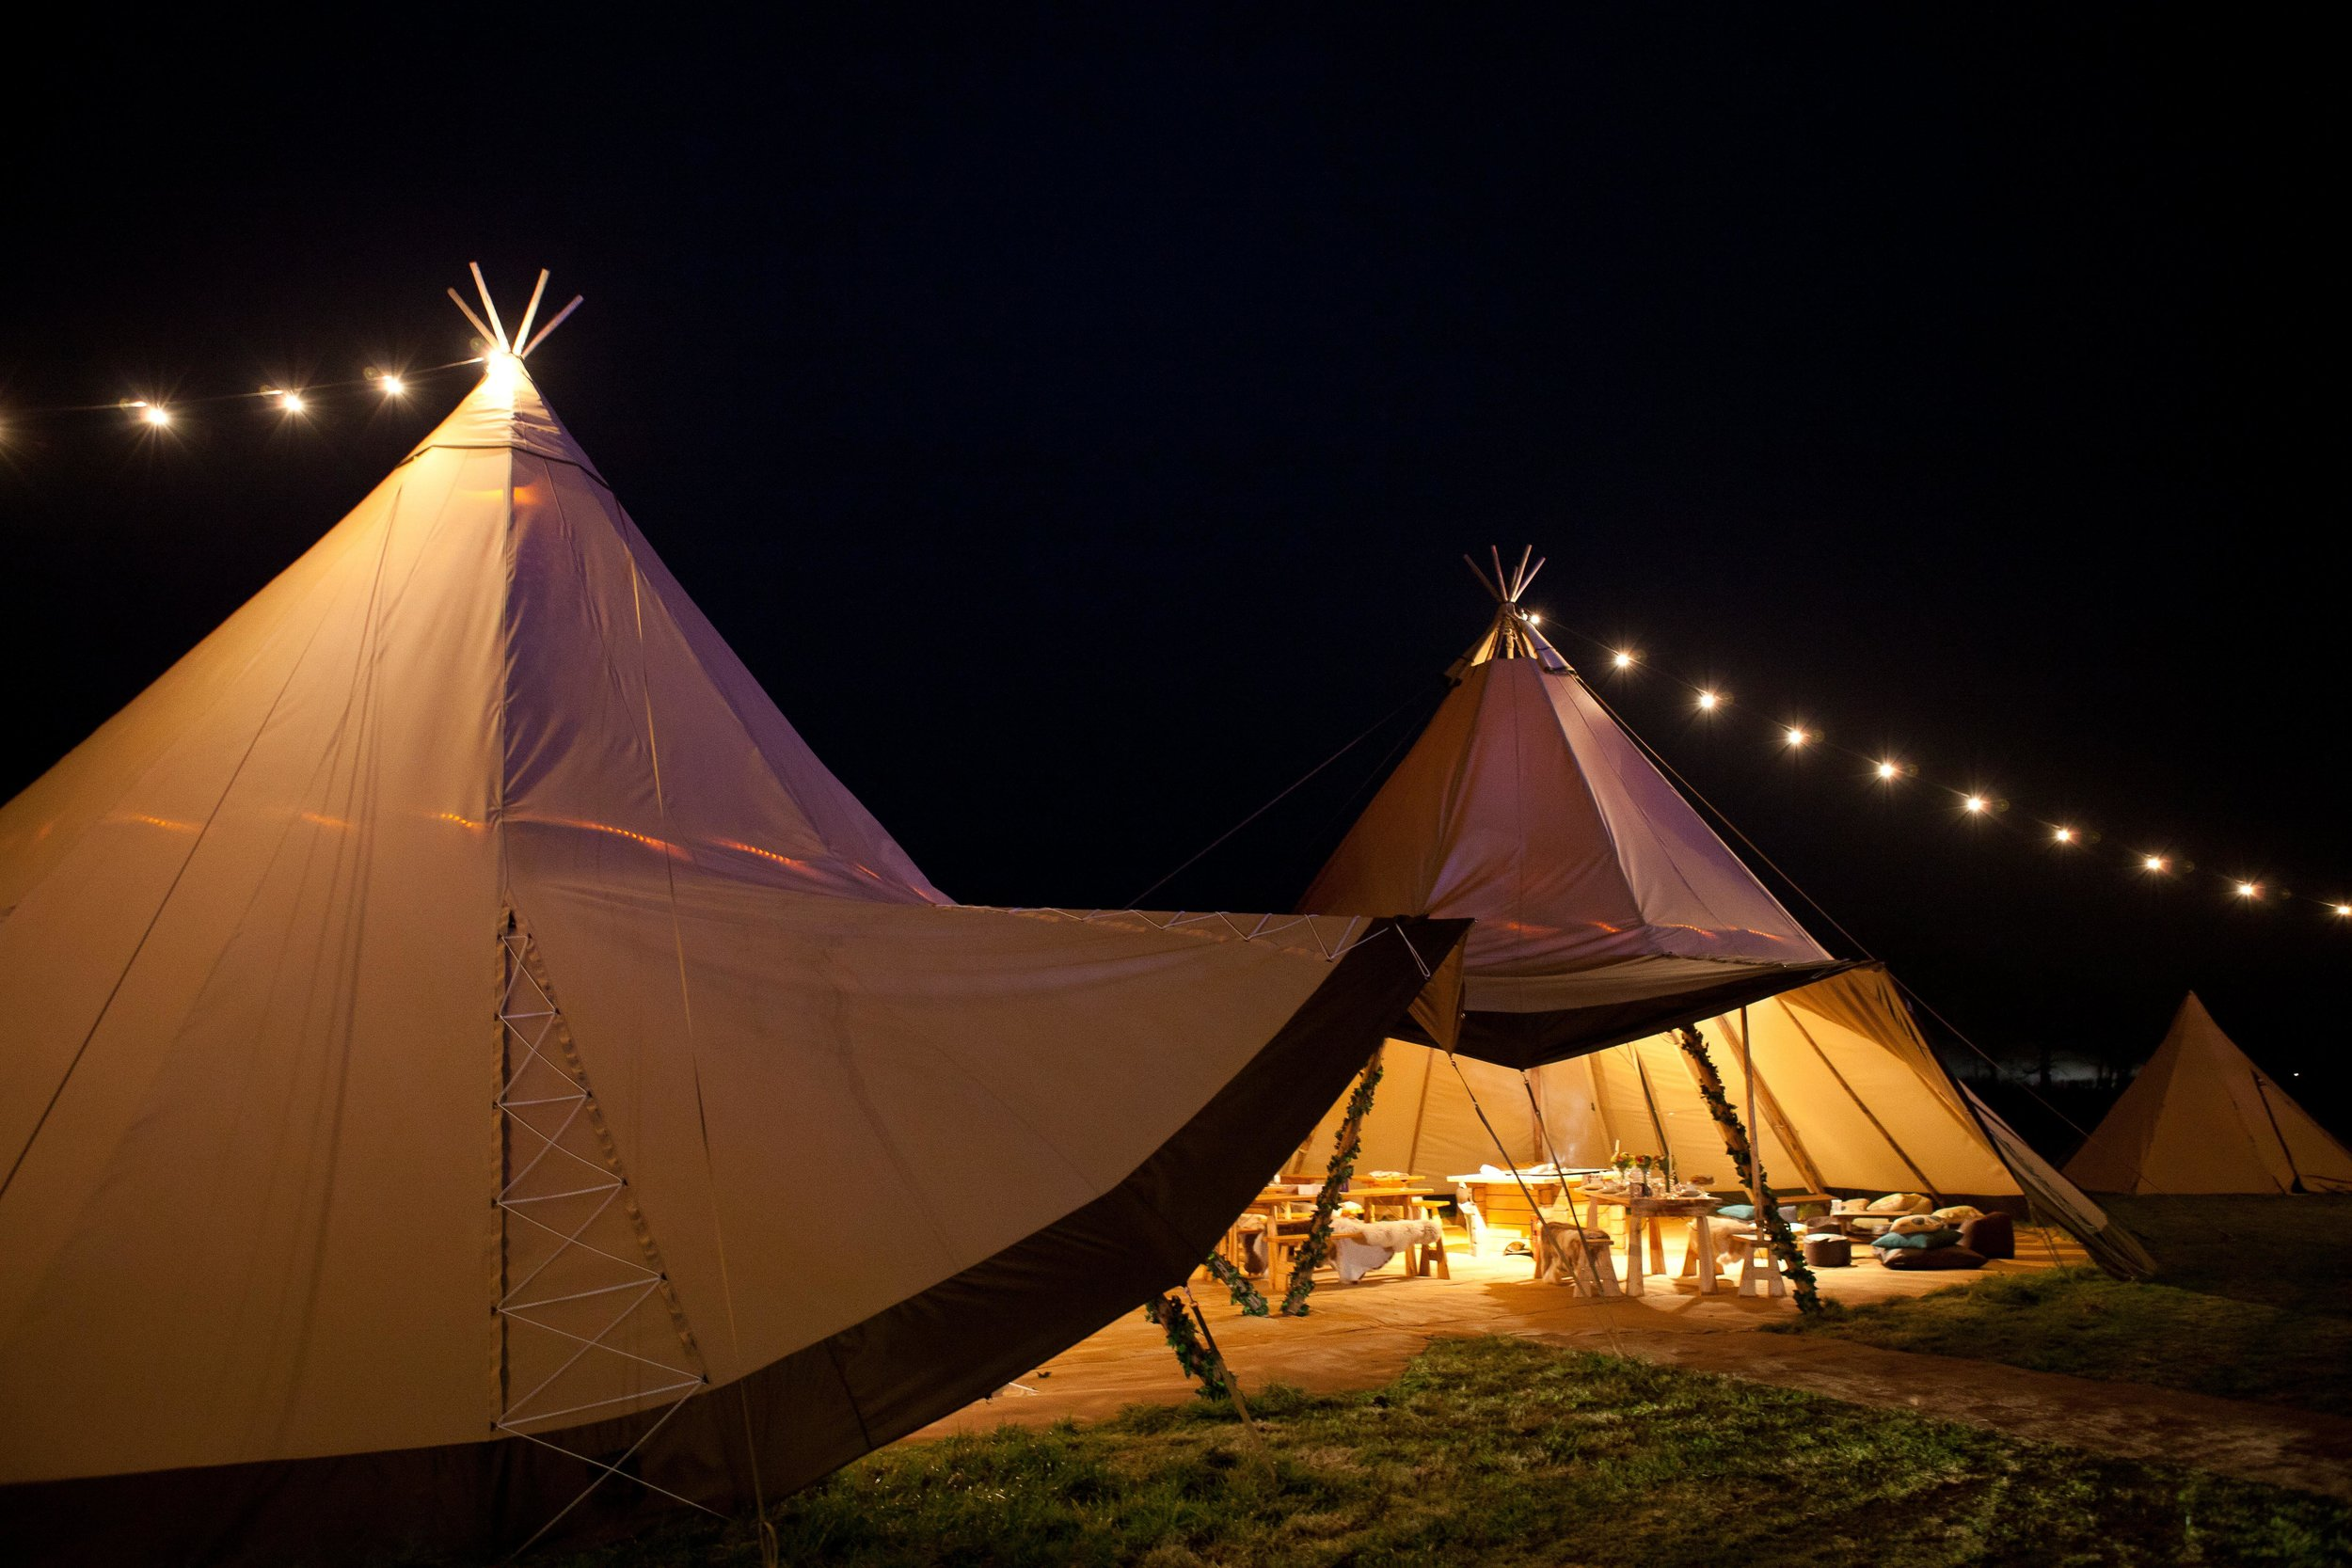 - Full Tipi set ups coming 2020Each tipi seating up to 80 people and can be joined to create larger areas.